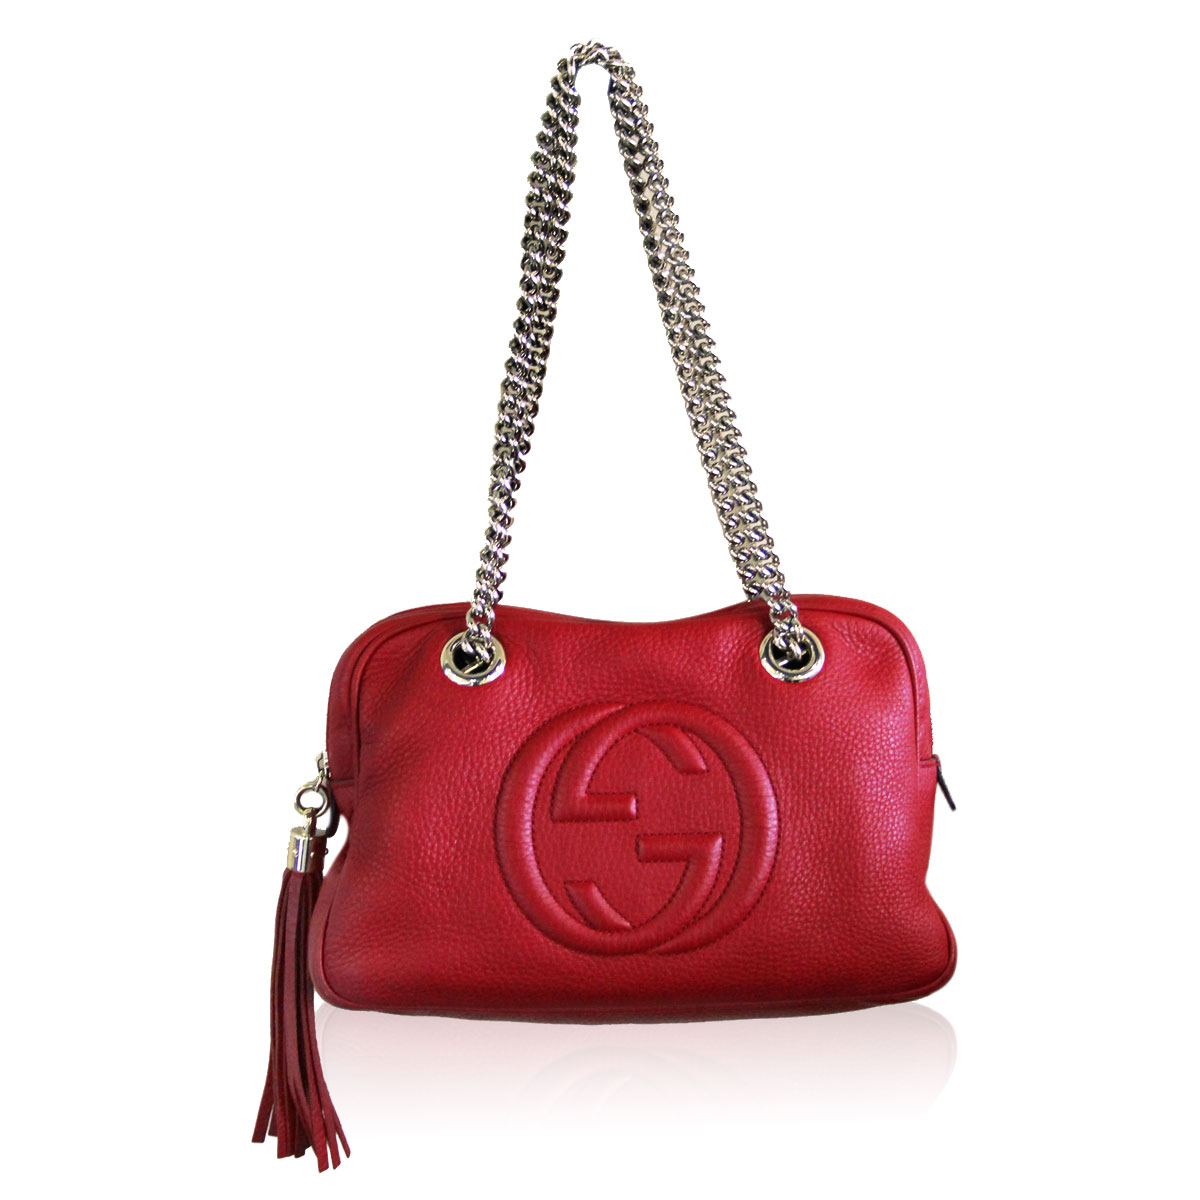 91a838dd8565 Gucci Red Pebbled Leather SHW Chain Soho Shoulder Bag